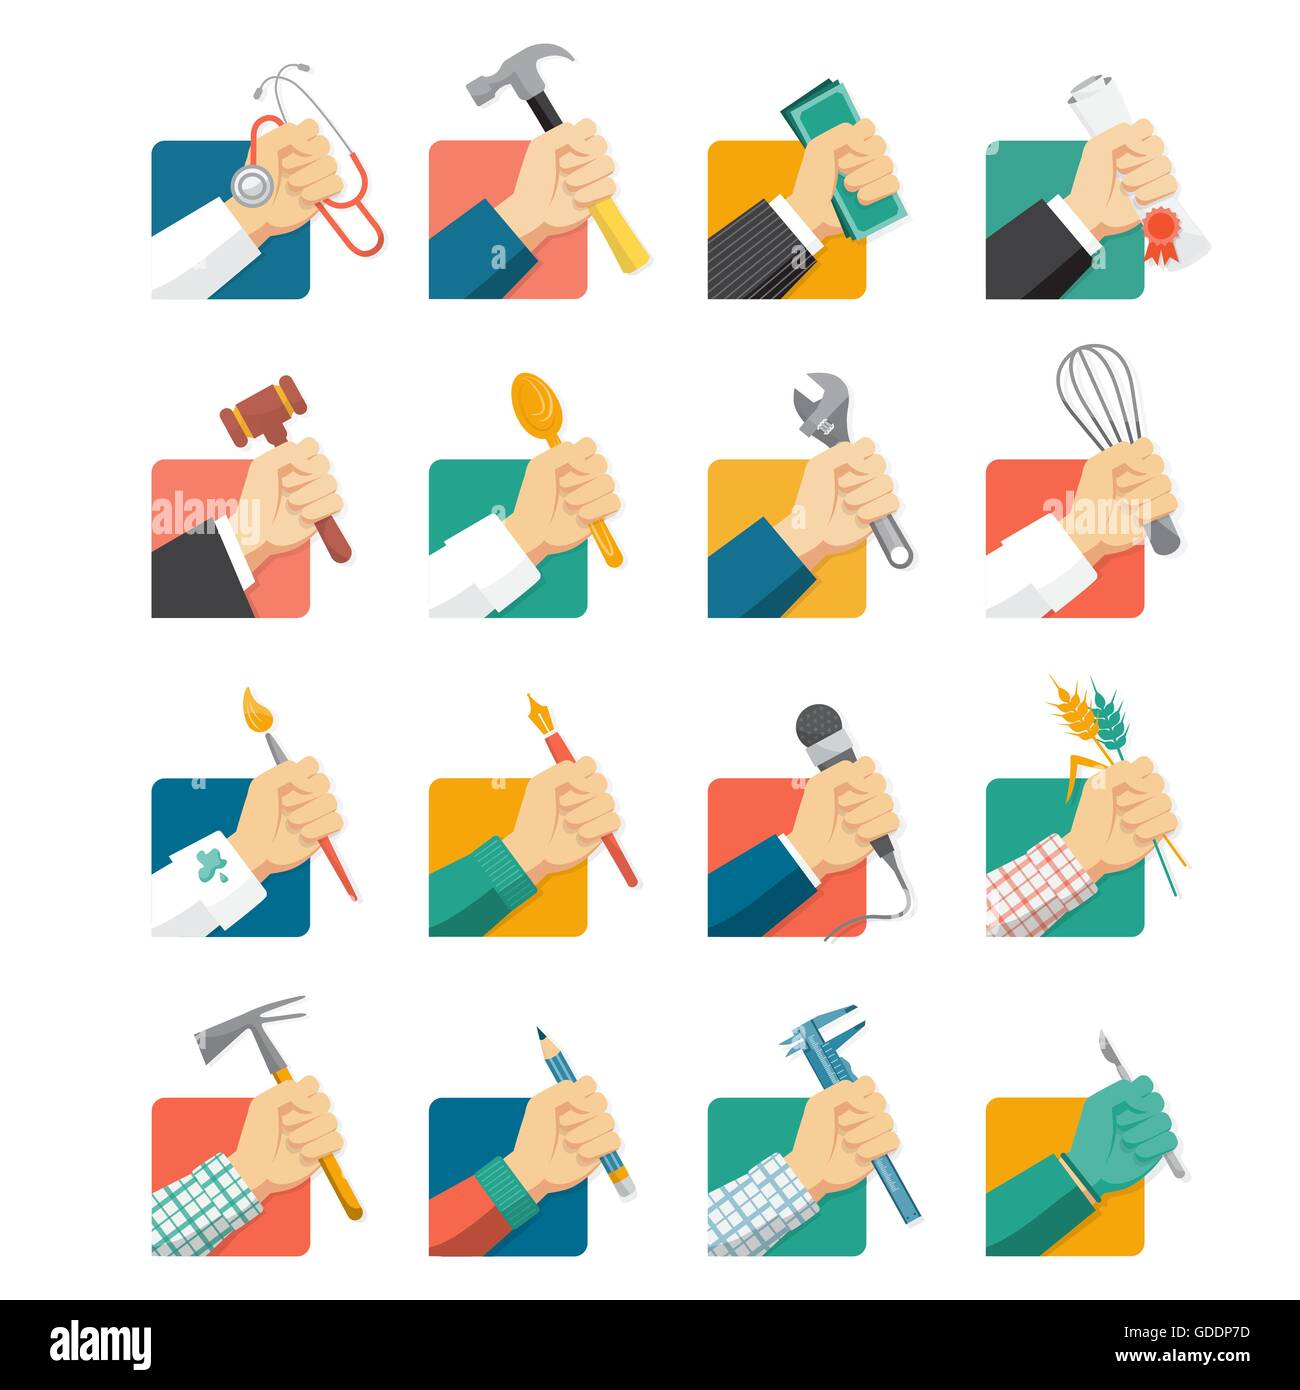 Jobs Avatar Icons Set With Hands And Tools Stock Vector